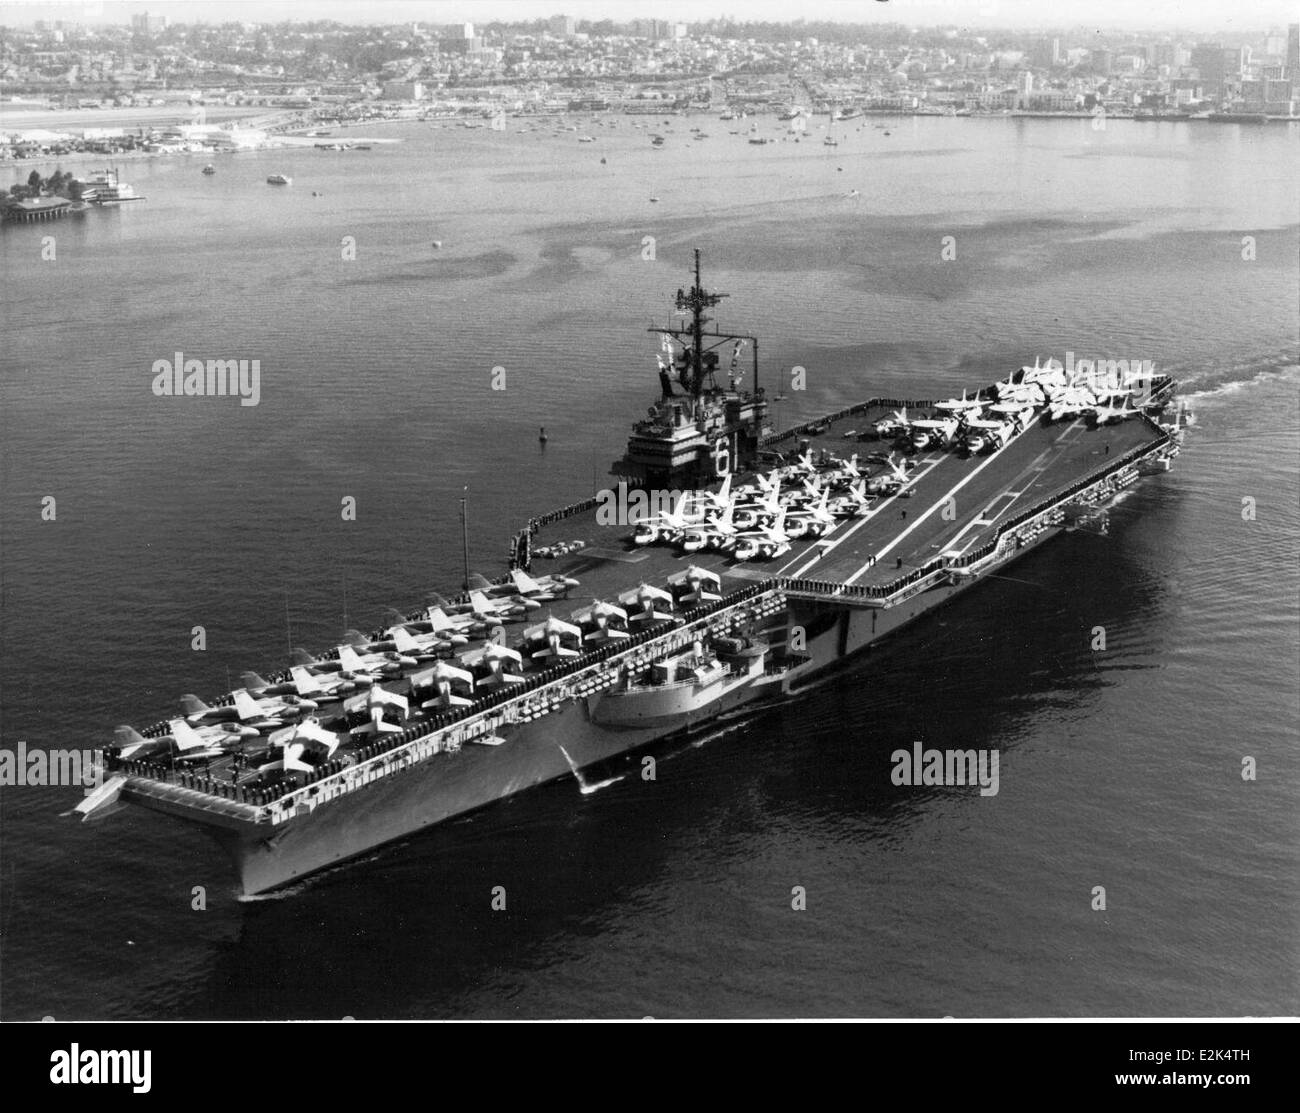 CV-61, USS Ranger, NAS NI Stock Photo: 70491697 - Alamy